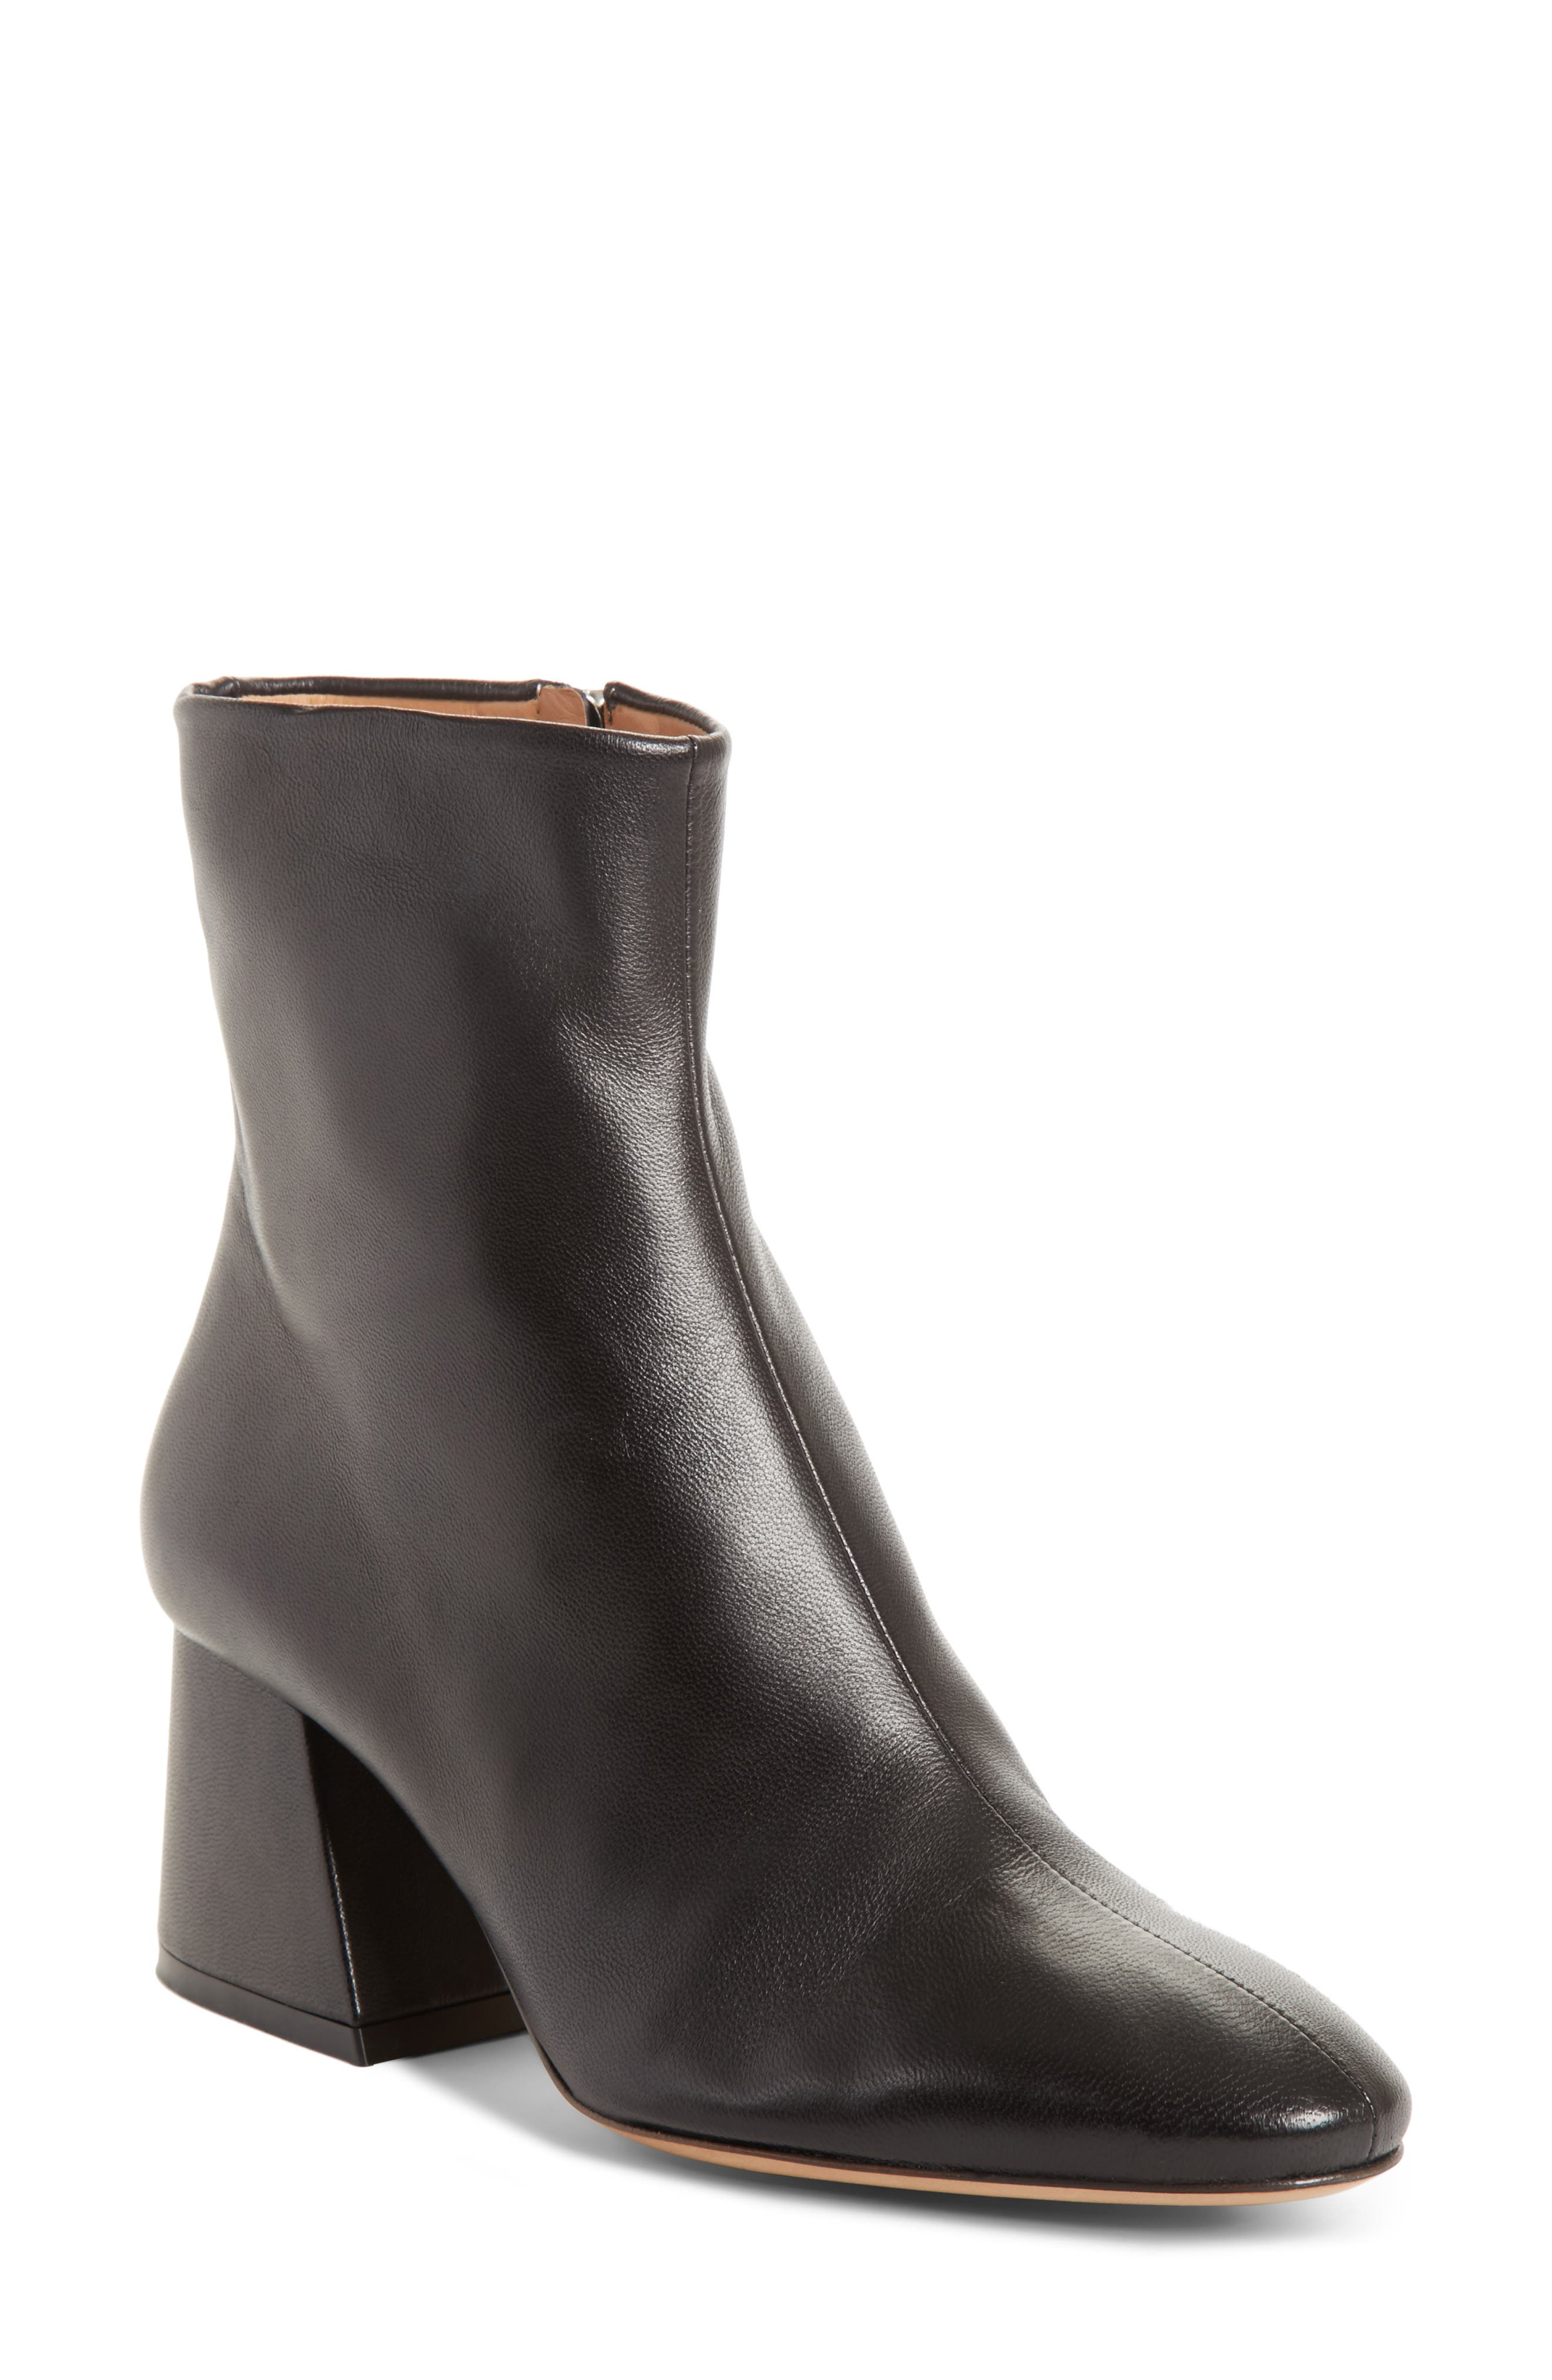 Flare Heel Ankle Boot,                             Main thumbnail 1, color,